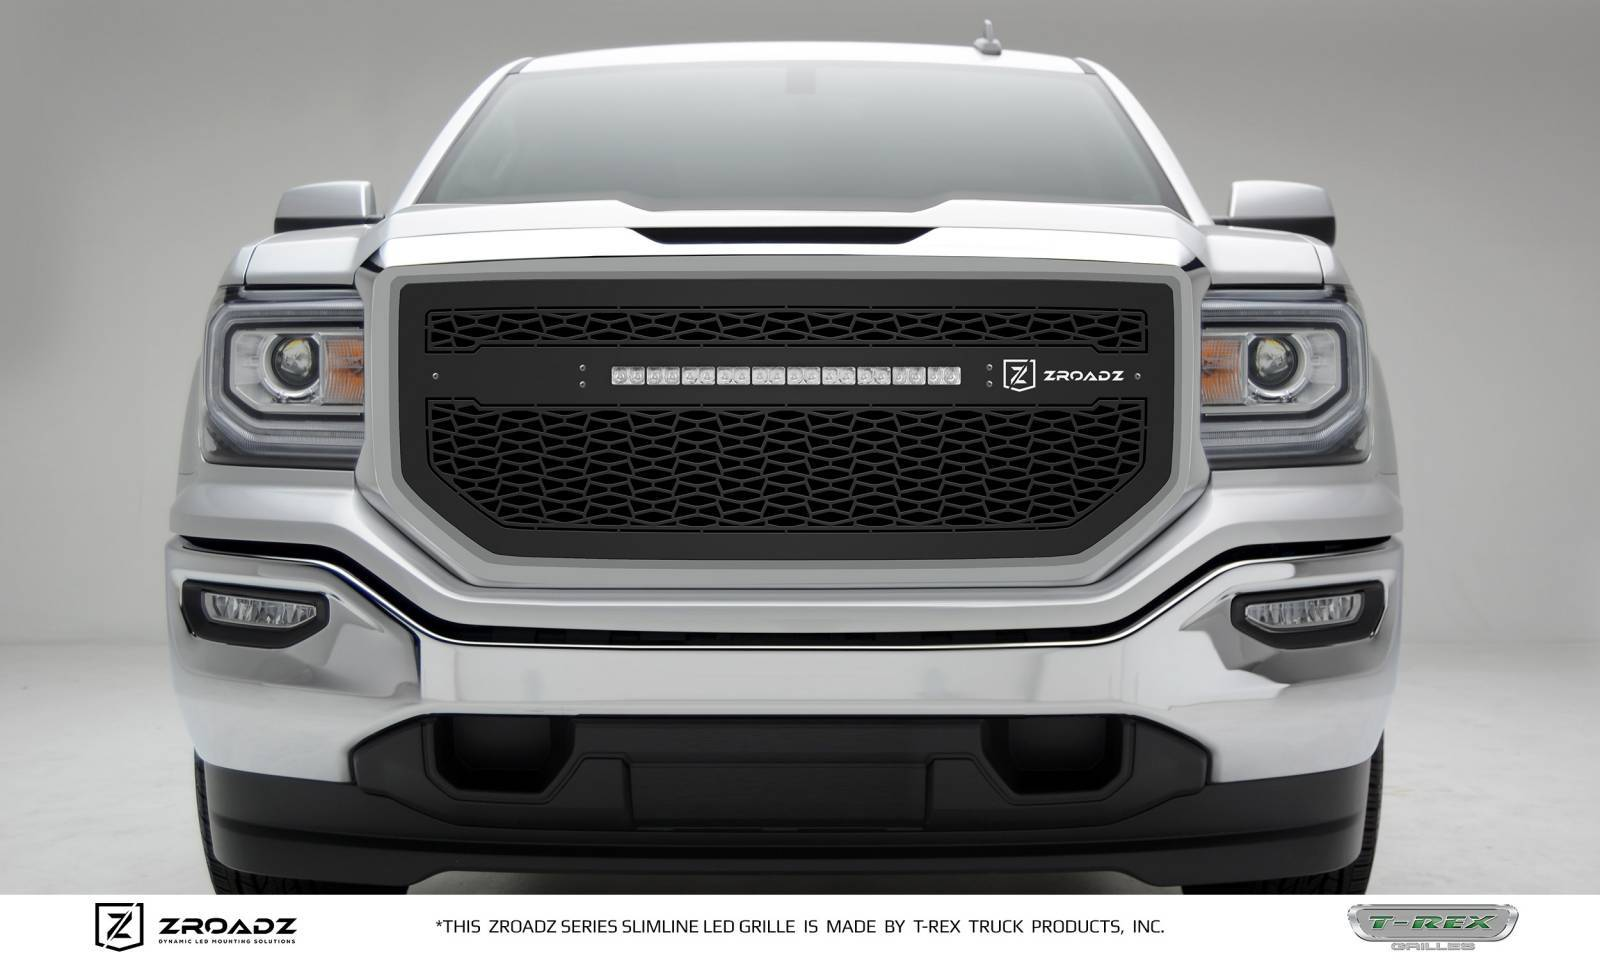 T-REX Grilles - 2016-2018 GMC  Sierra 1500 Main Grille, Including (1) 20 Inch ZROADZ LED Straight Single Row Slim Light Bar - Z312131